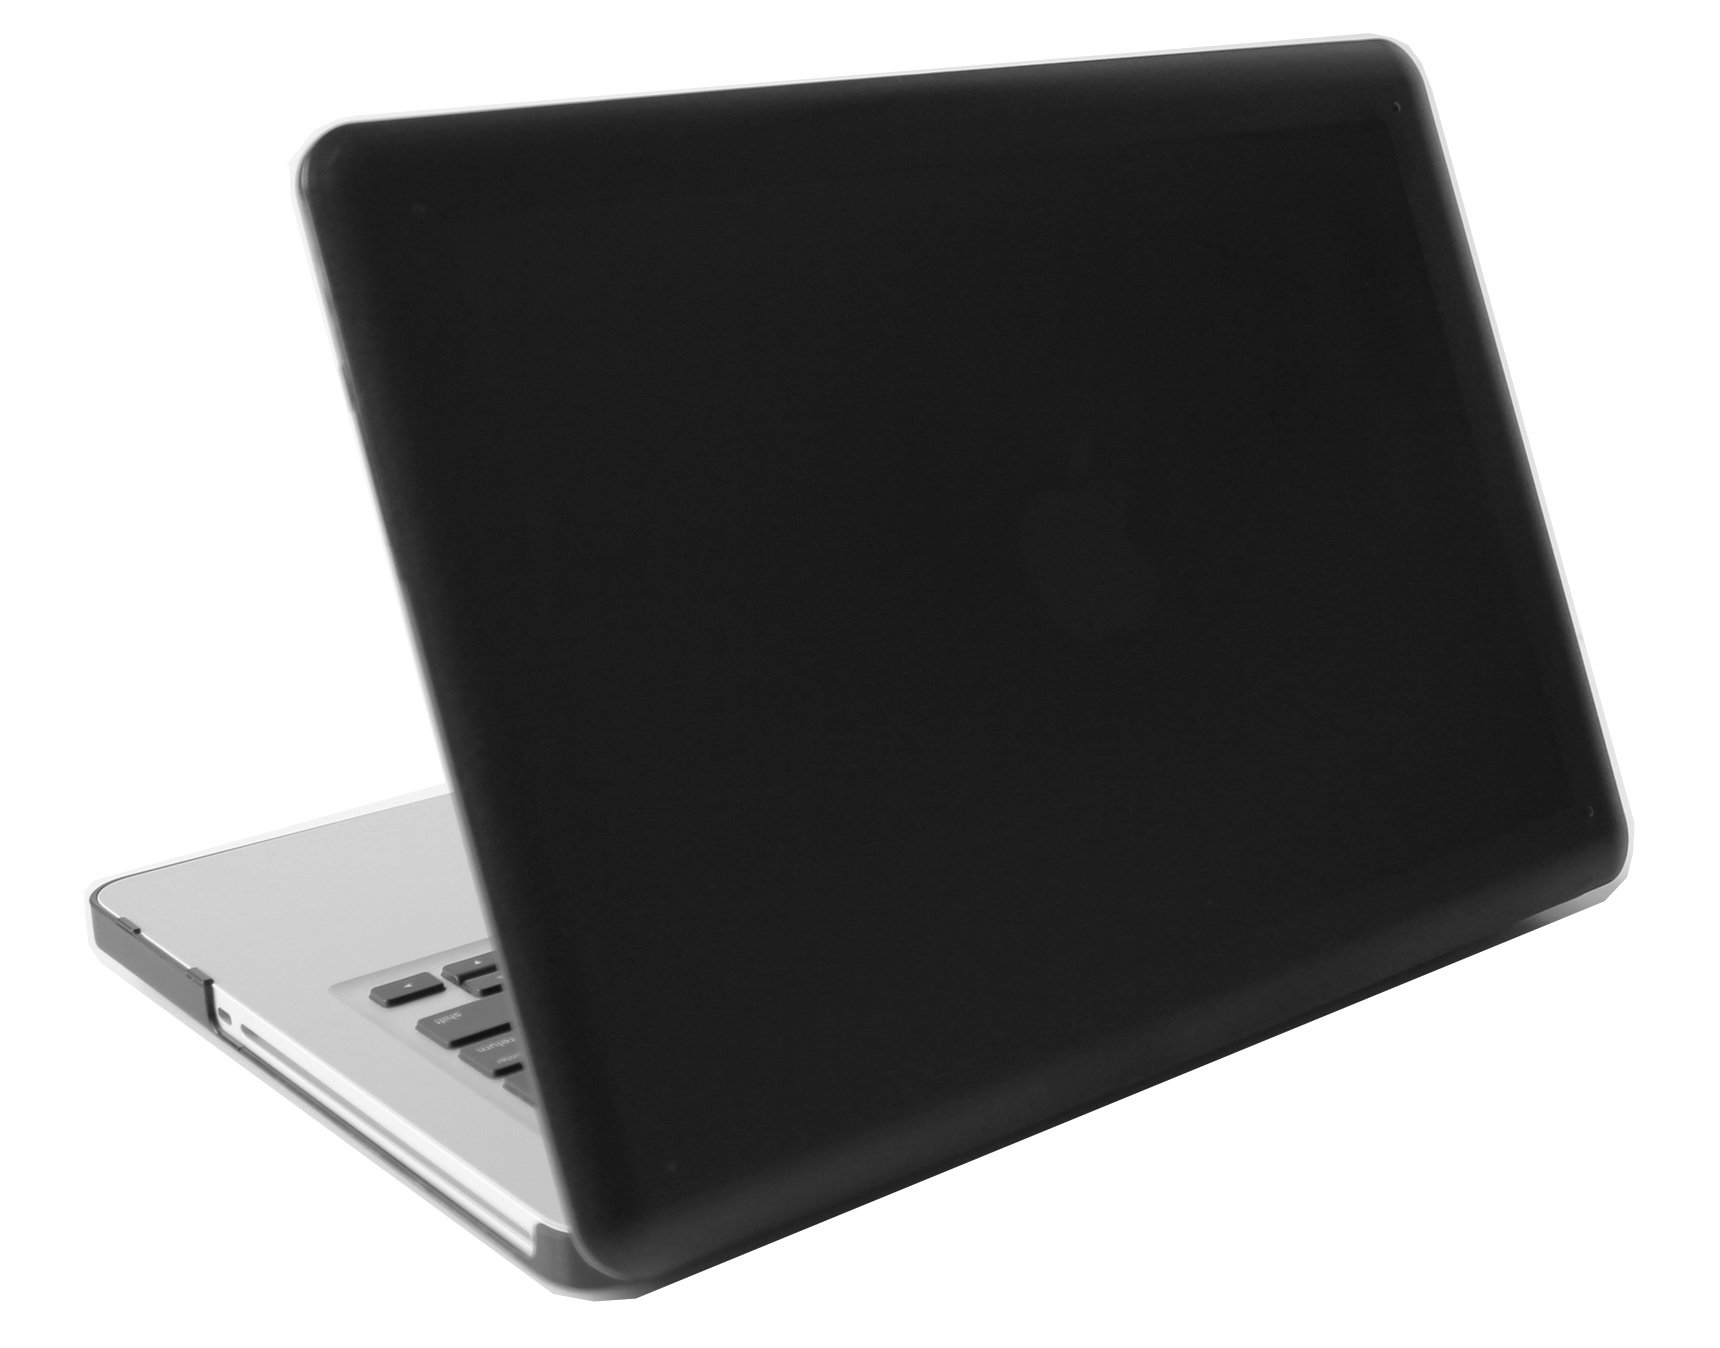 iPearl mCover Hard Shell Case with FREE keyboard cover for Model A1278 13-inch Regular display Aluminum Unibody MacBook Pro - BLACK